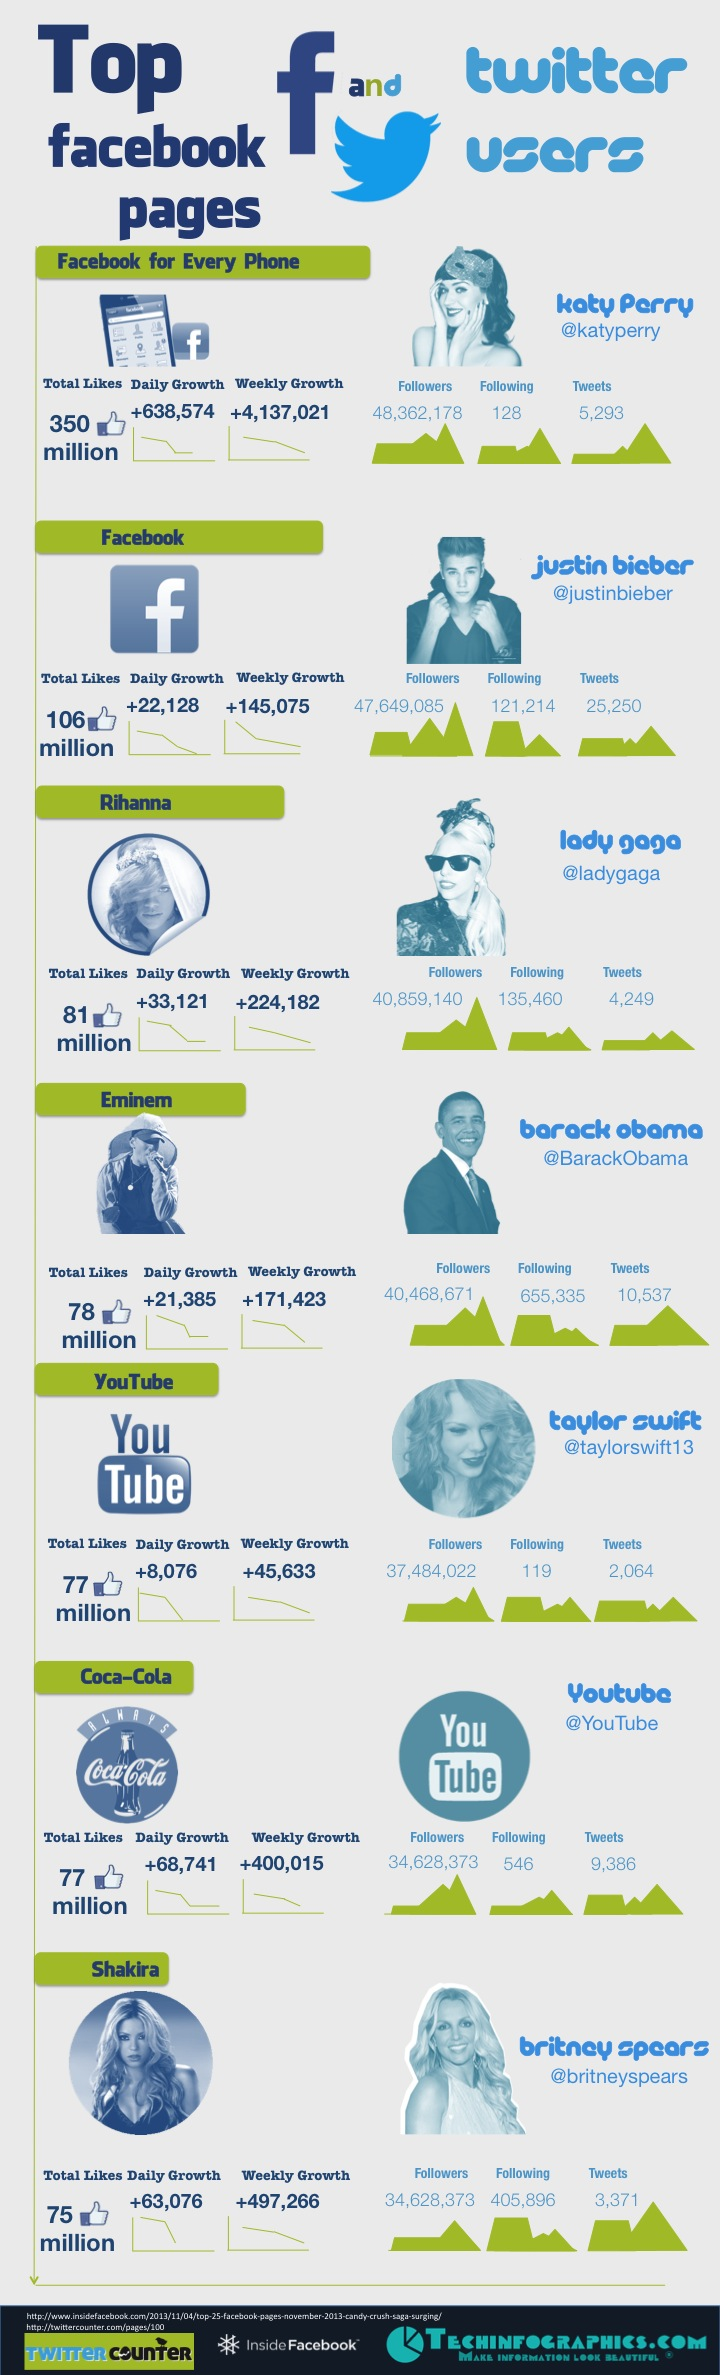 Most Popular Facebook Pages and Twitter Accounts - Infographic